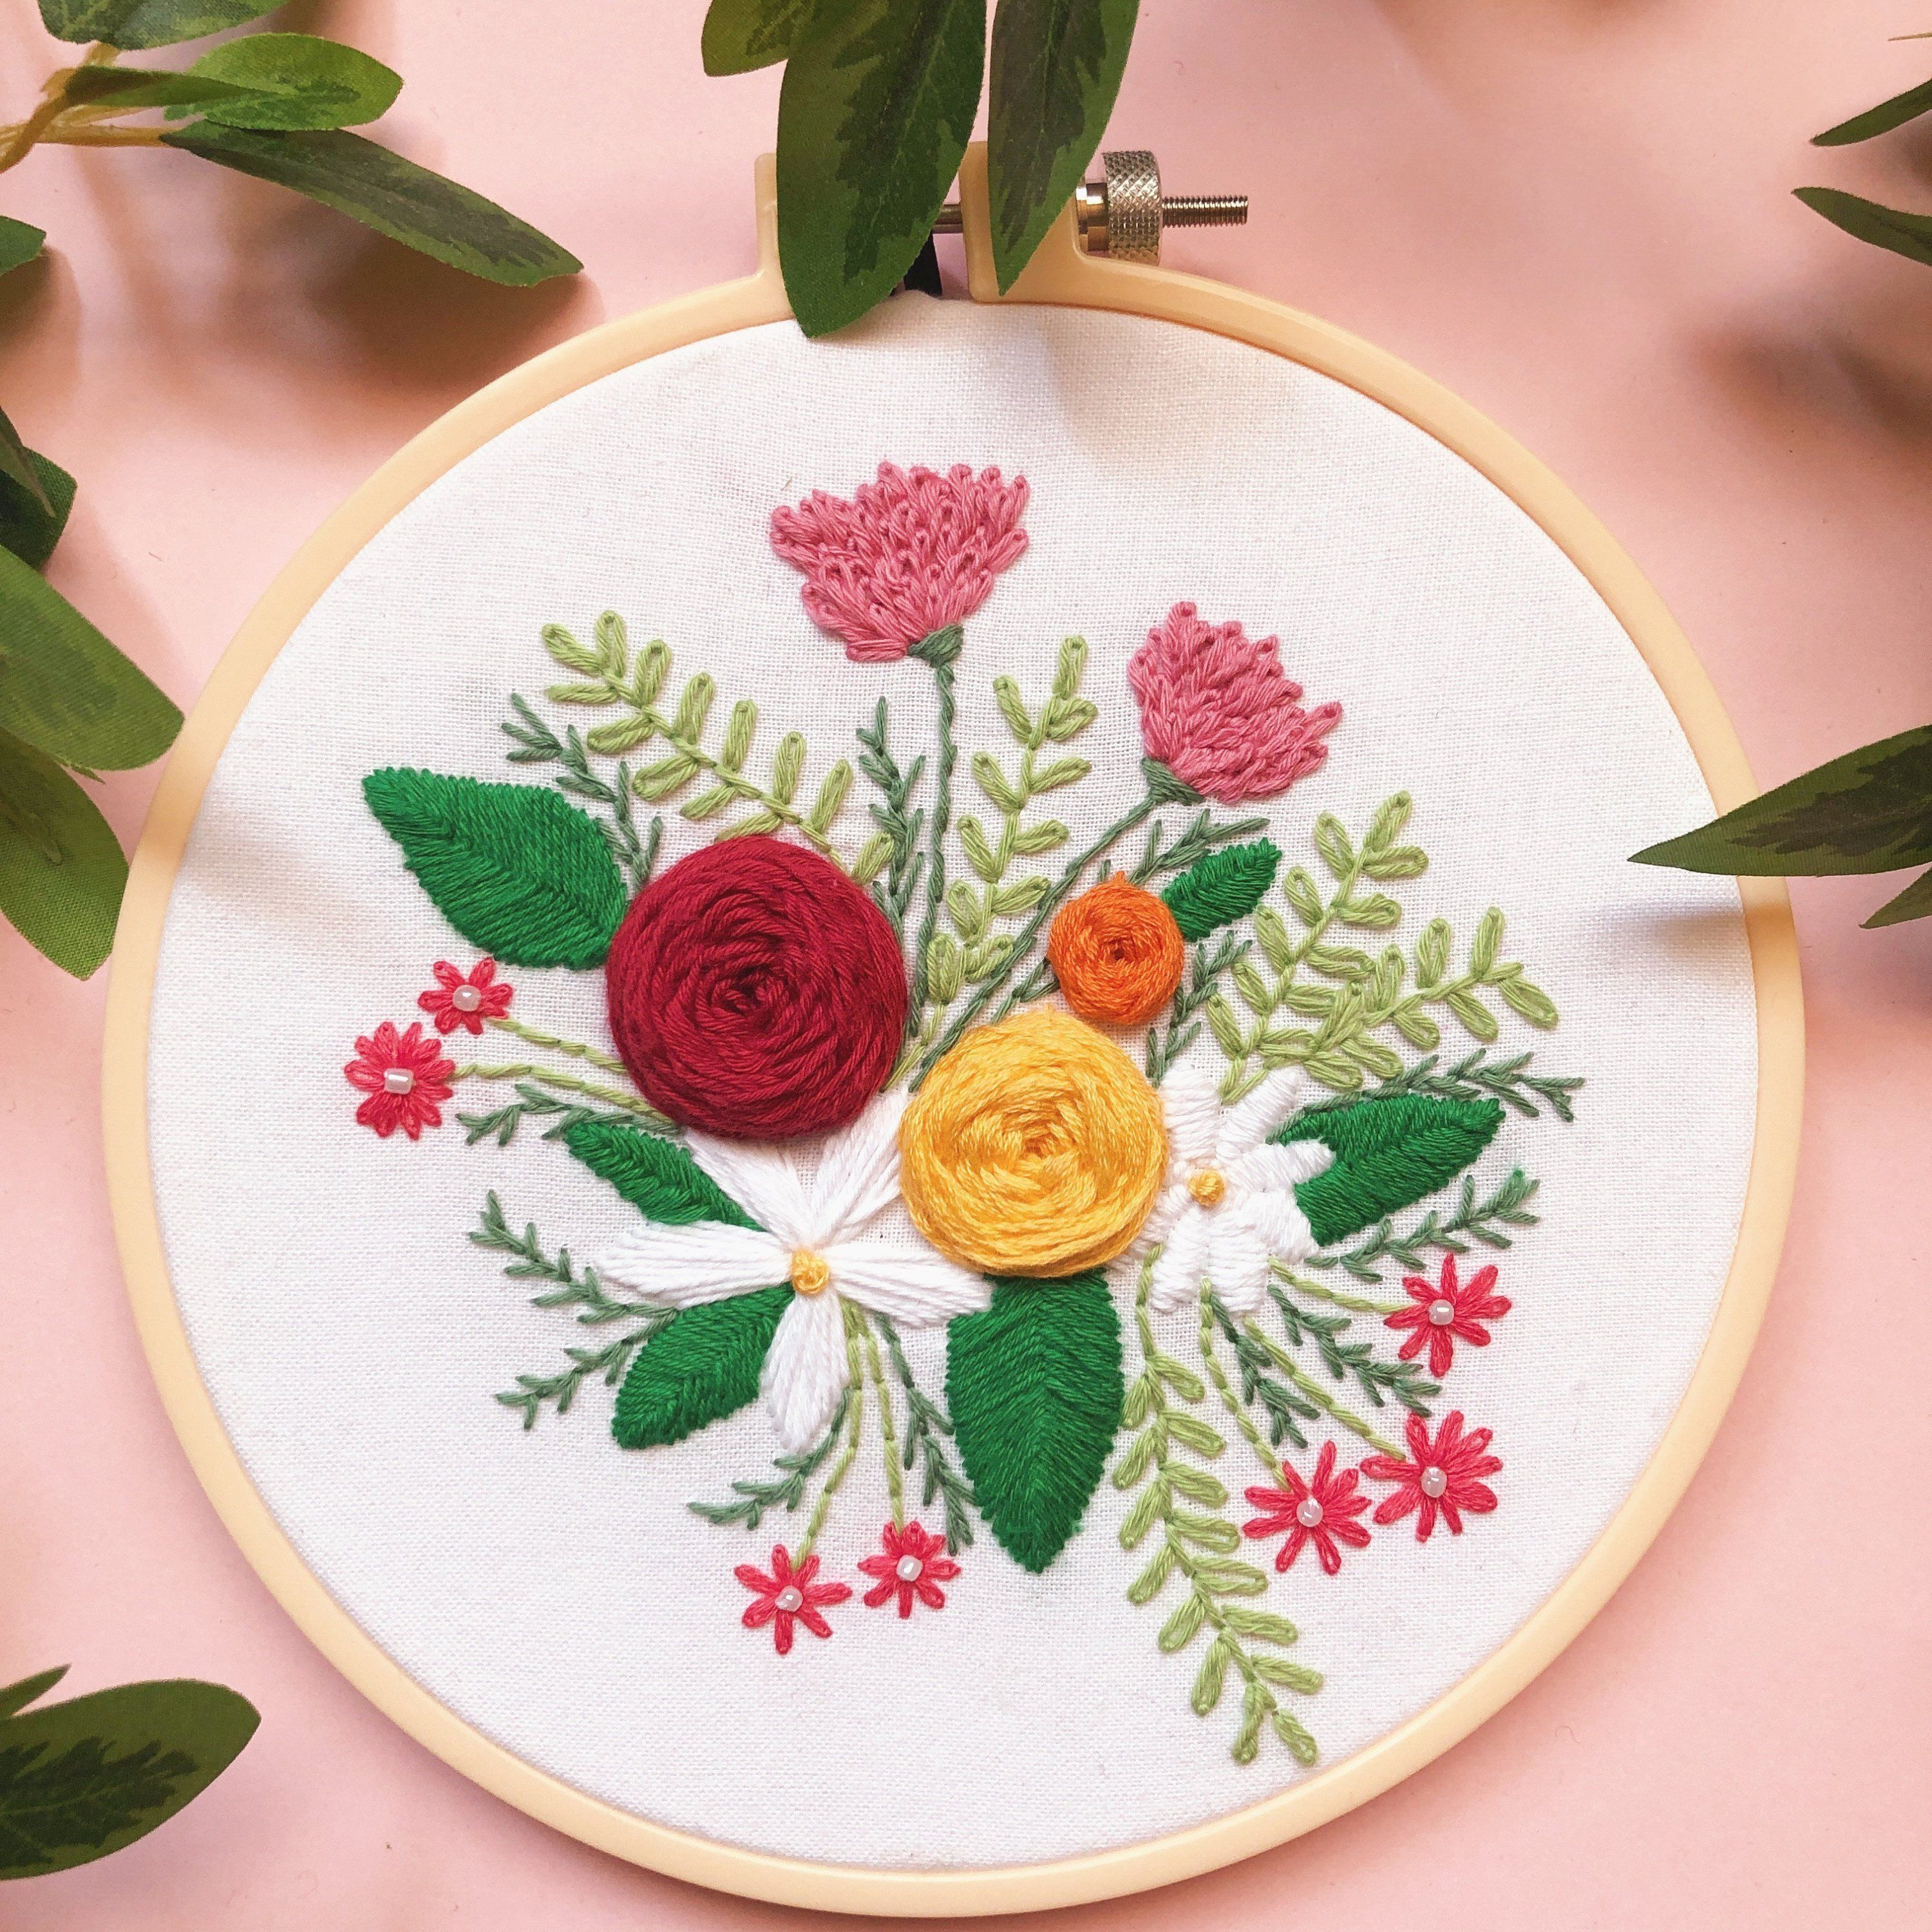 Adult DIY Craft Kits - Floral Embroidery Hoops